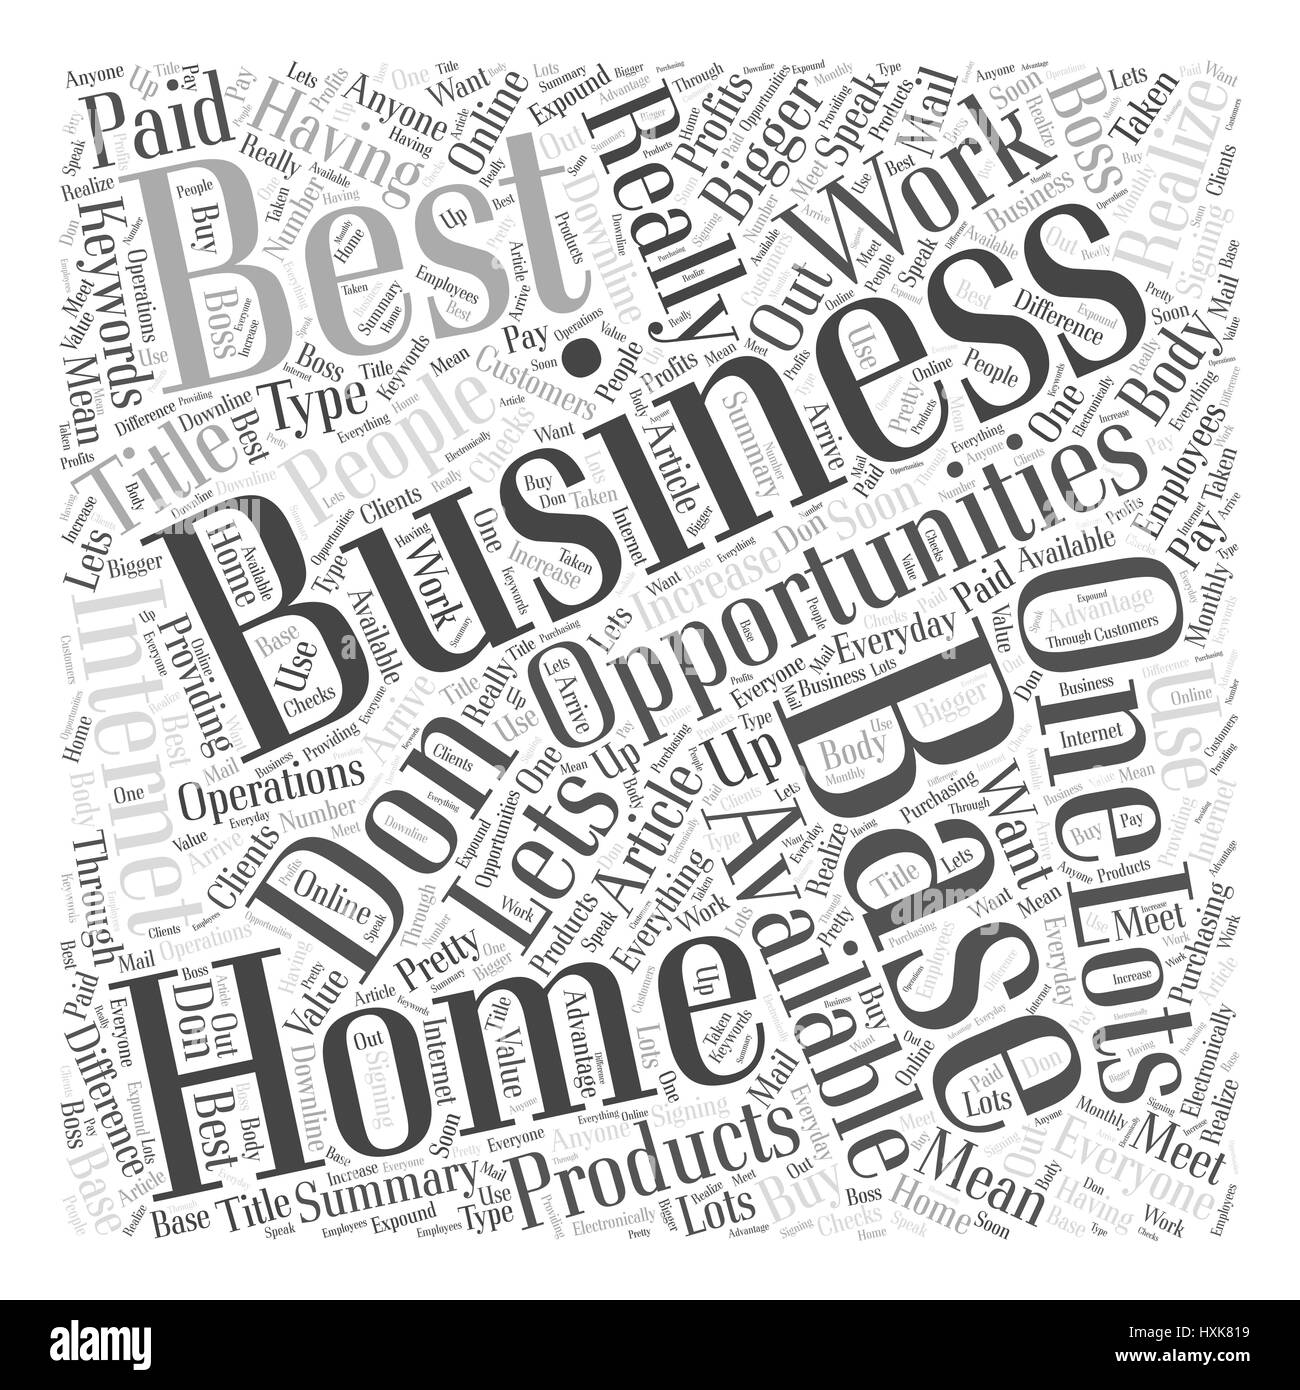 Unique Top Home Based Business Opportunities Illustration - Home ...